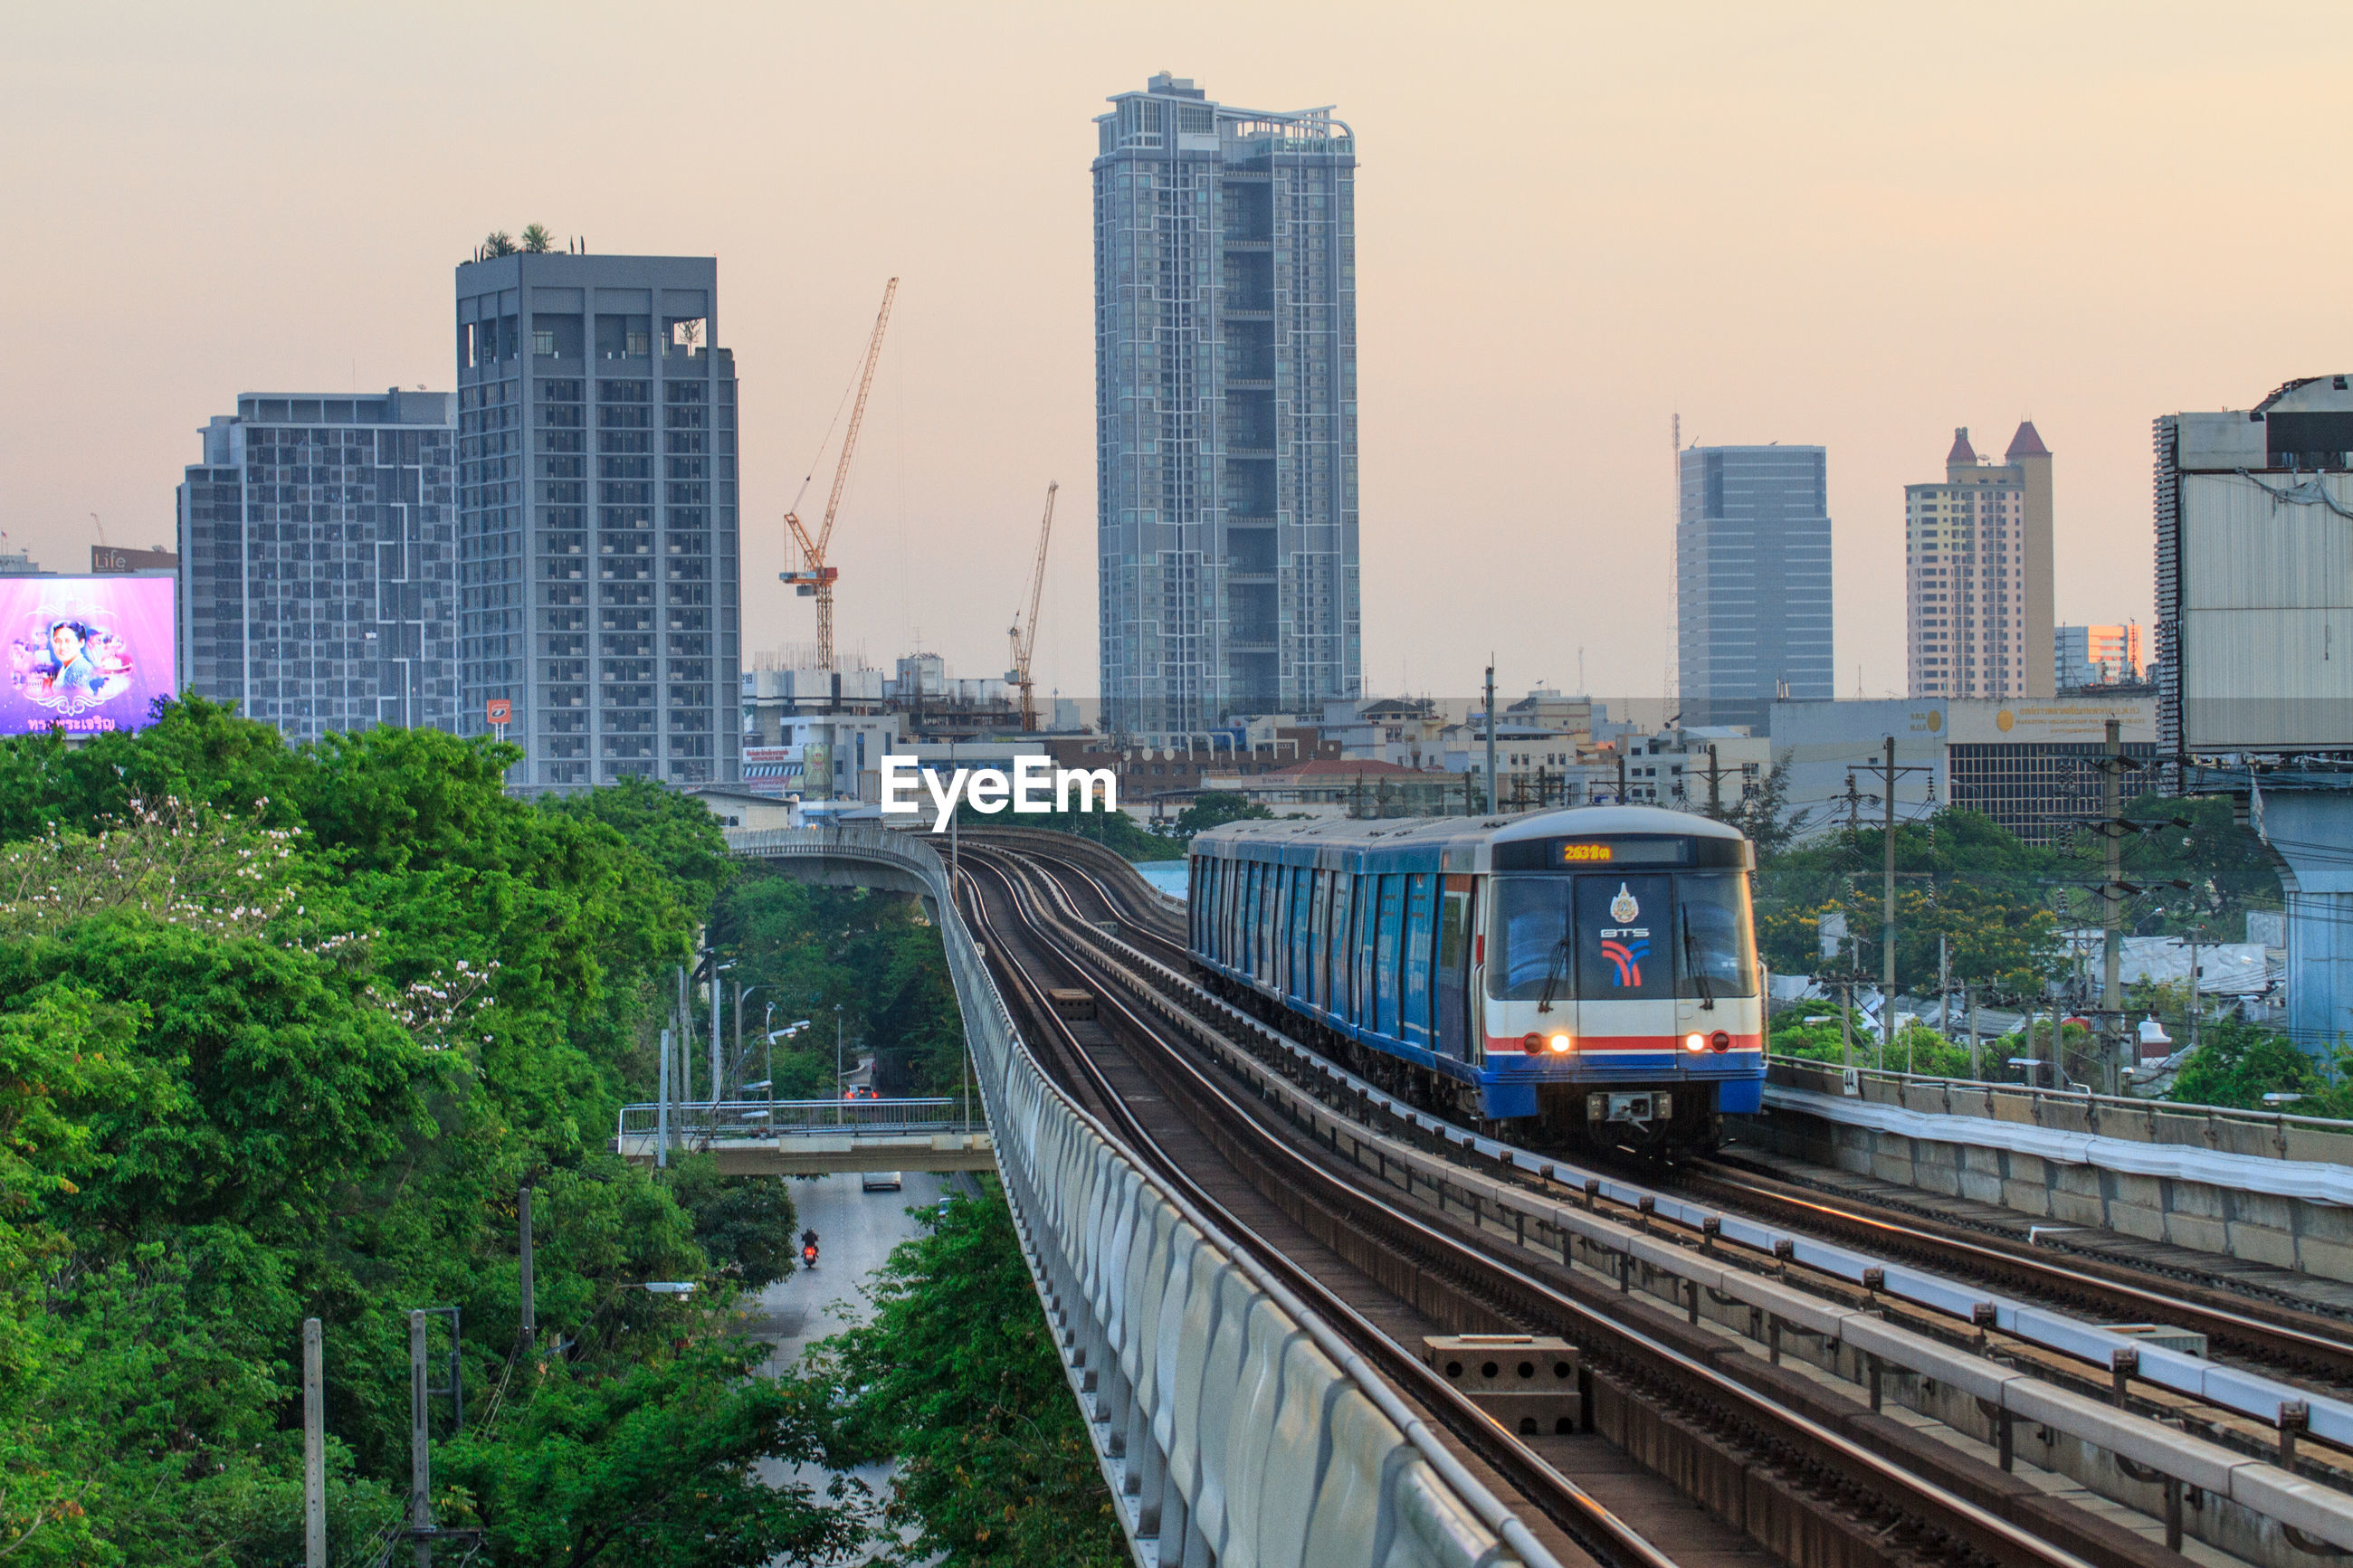 Train on railroad tracks against buildings in city during sunset